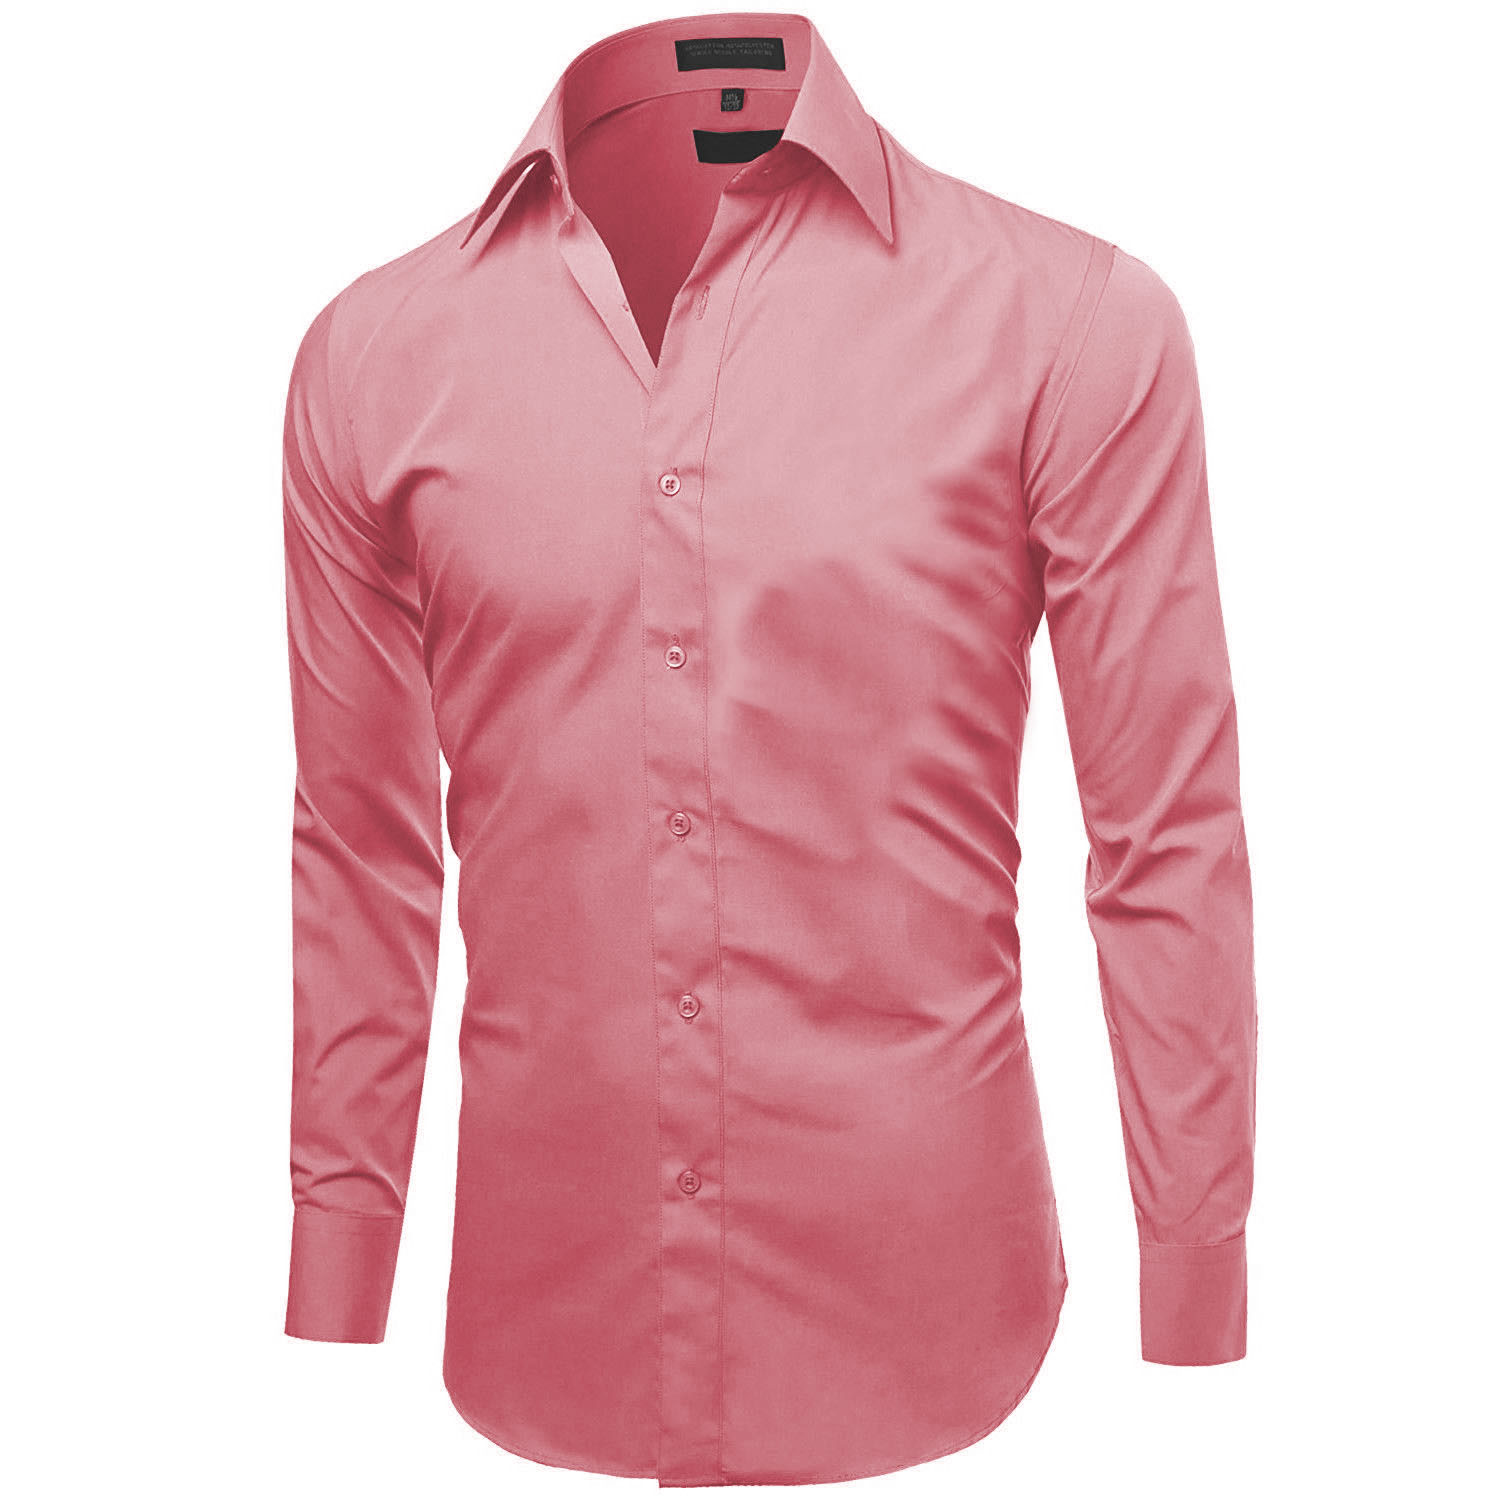 Omega-Italy-Men-039-s-Premium-Slim-Fit-Button-Up-Long-Sleeve-Solid-Color-Dress-Shirt thumbnail 78